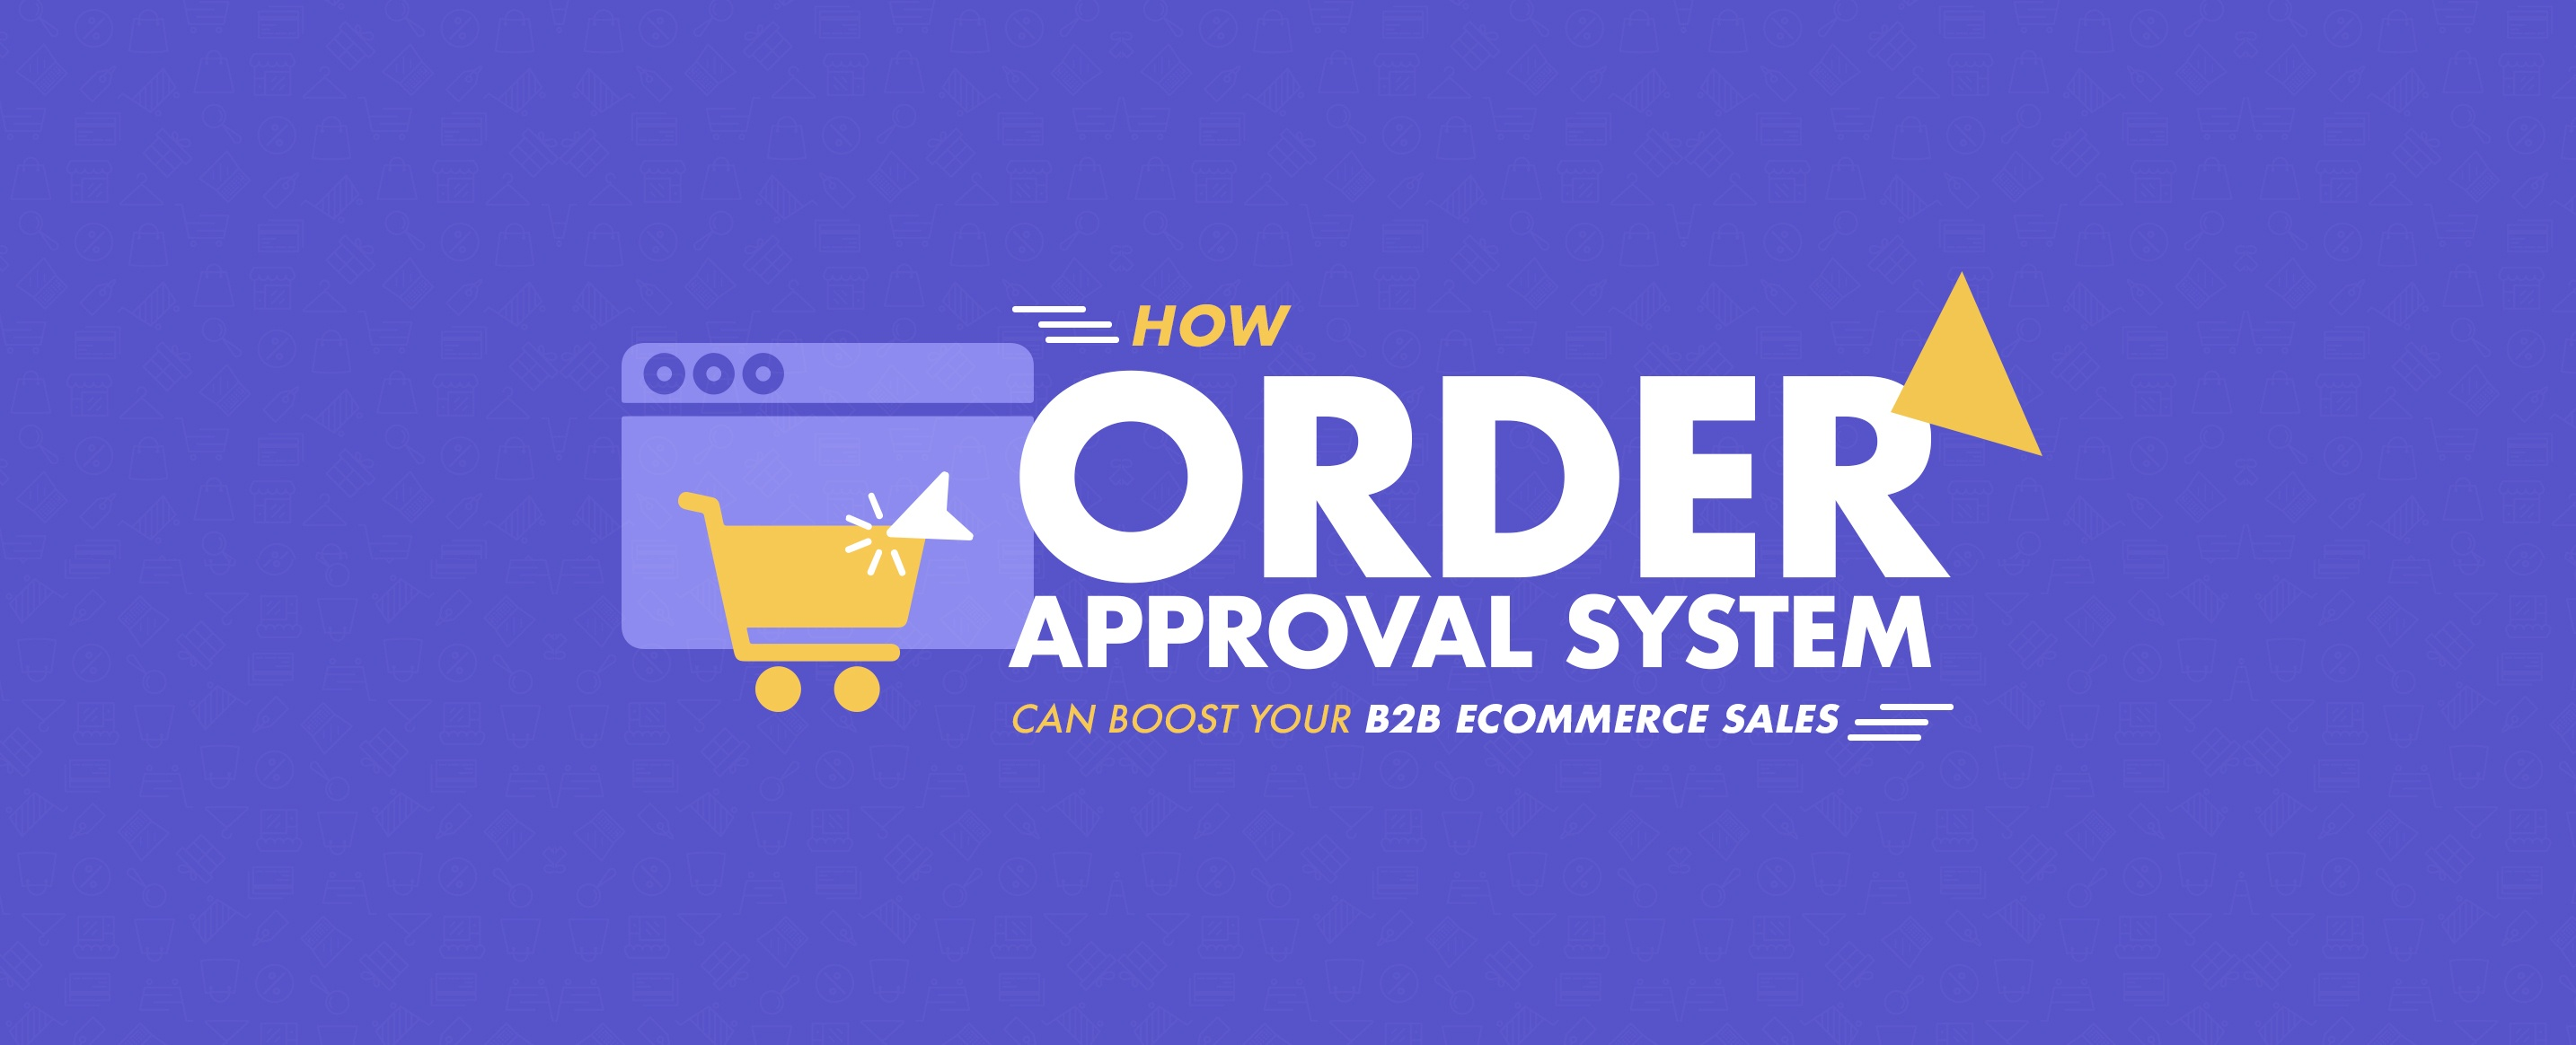 How-Order-Approval-System-can-Boost-your-B2B-Ecommerce-Sales